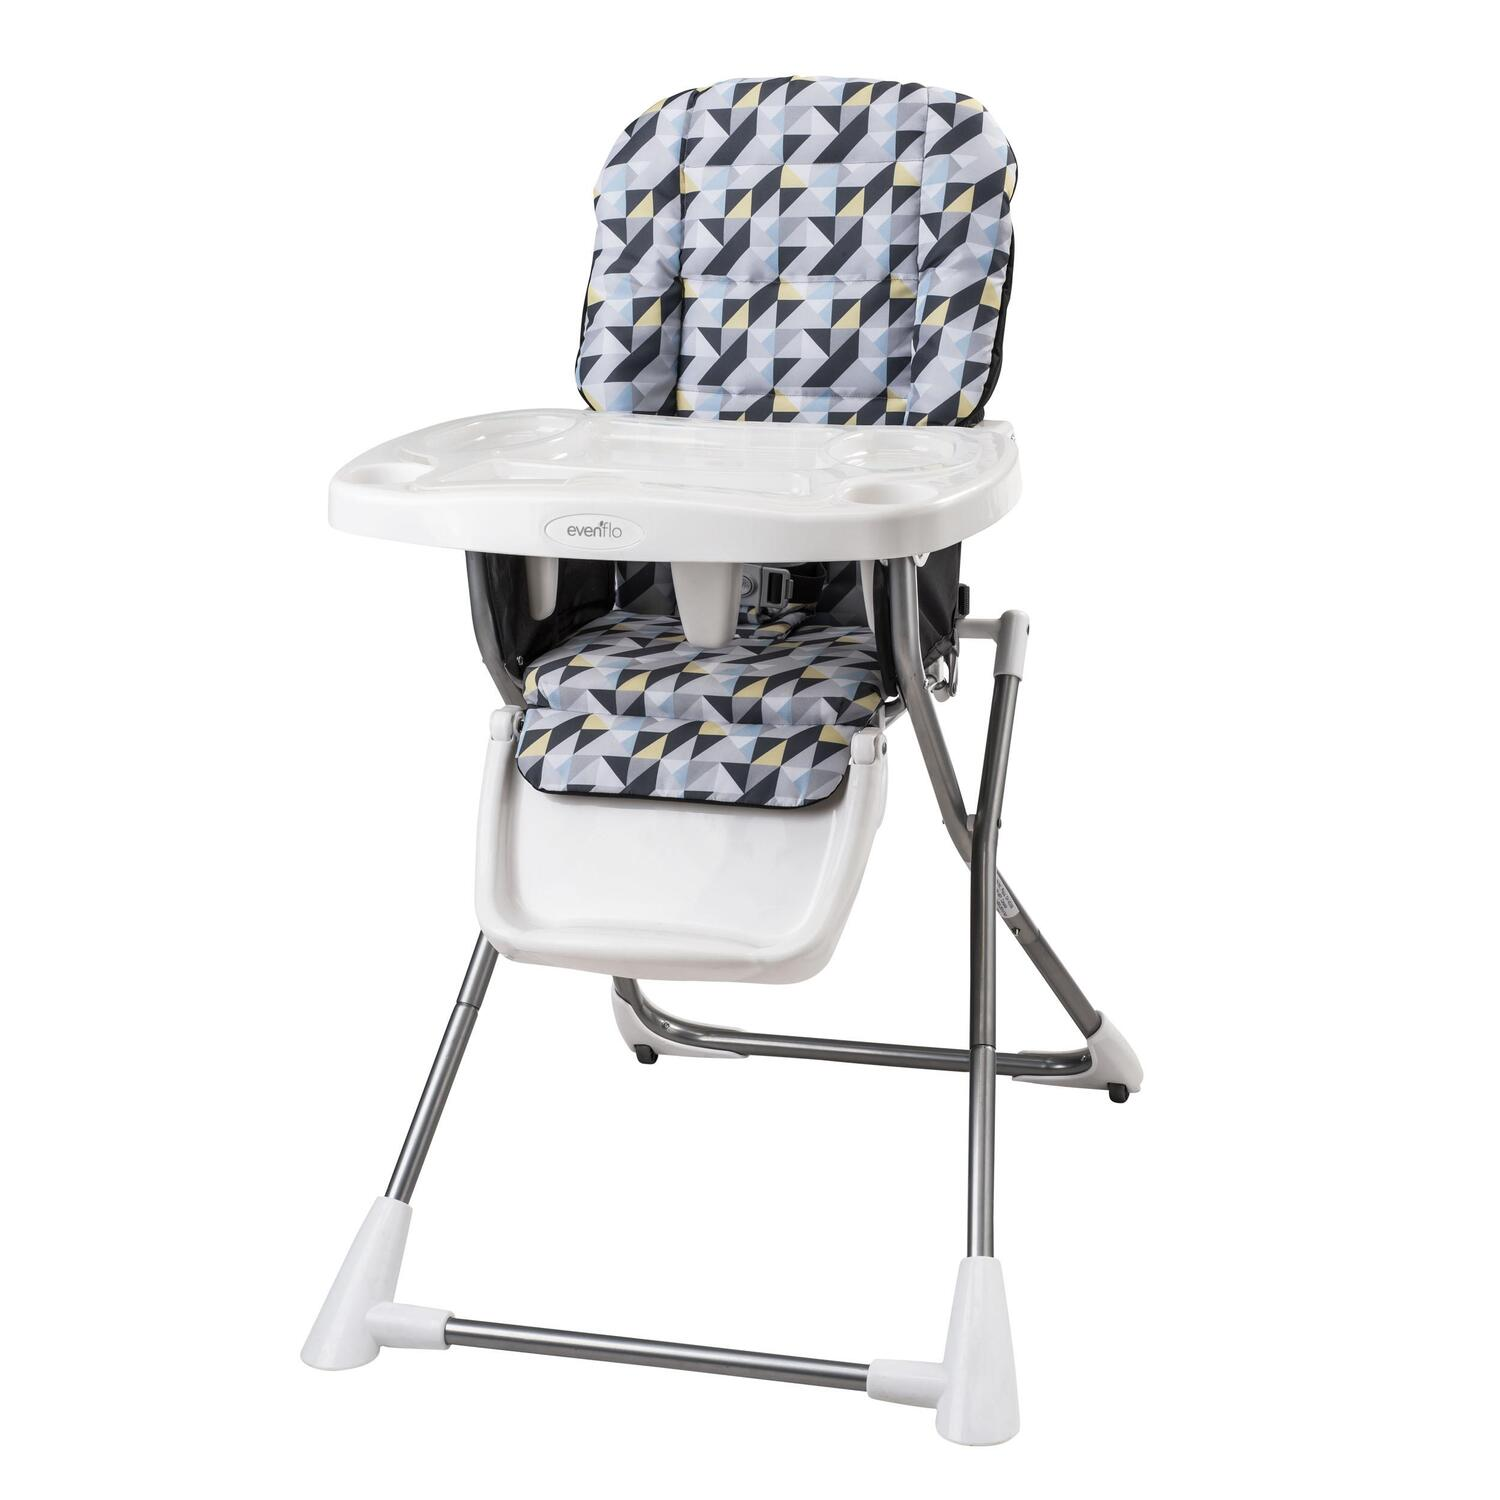 Evenflo Compact Fold High Chair Evenflo Compact Fold High Chair By Oj Commerce 55 99